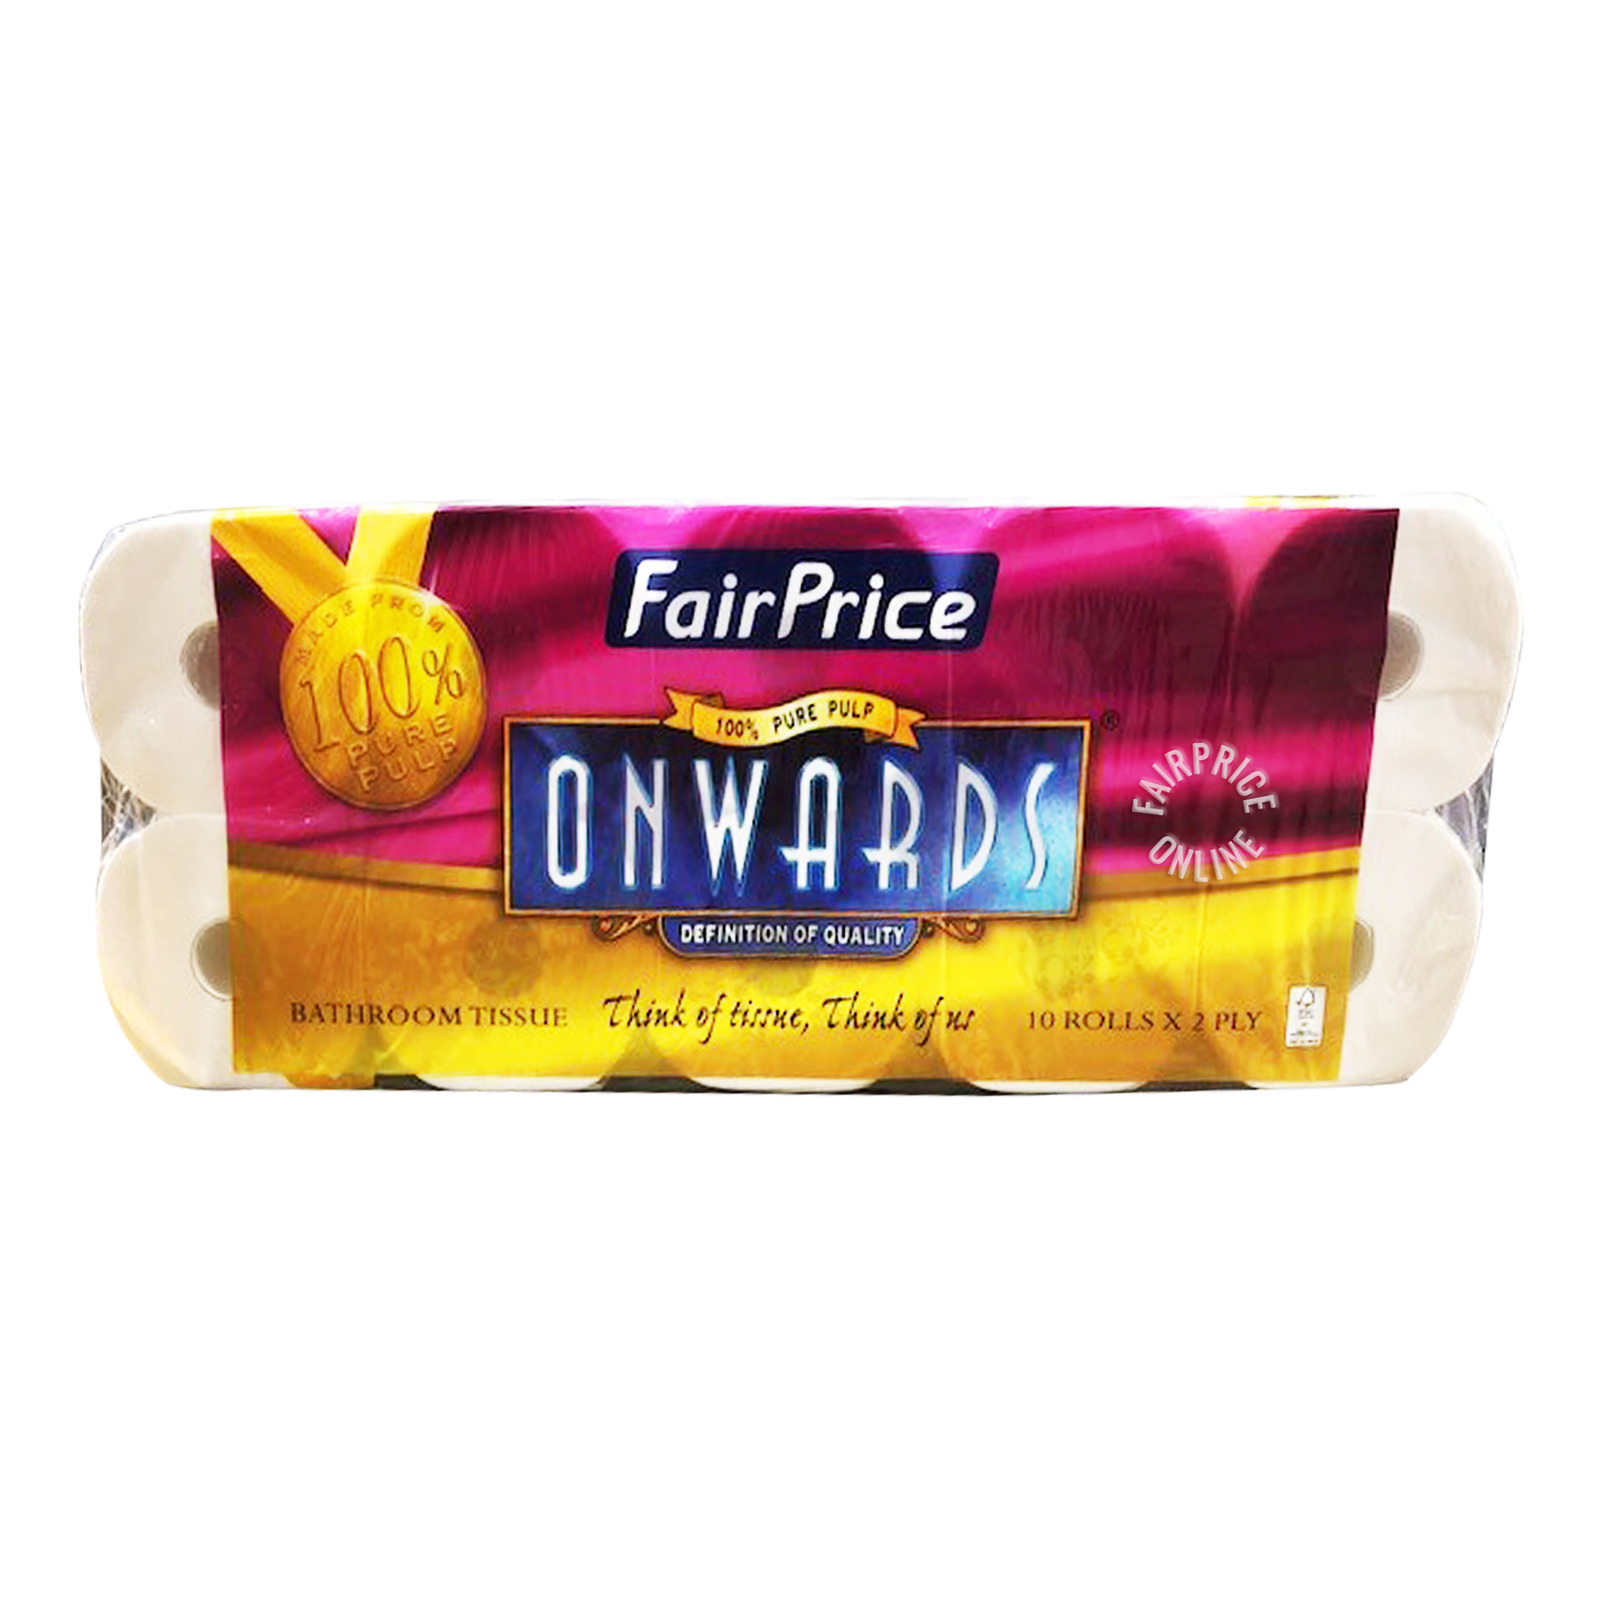 FairPrice Onwards Bathroom Tissue - 2 Ply